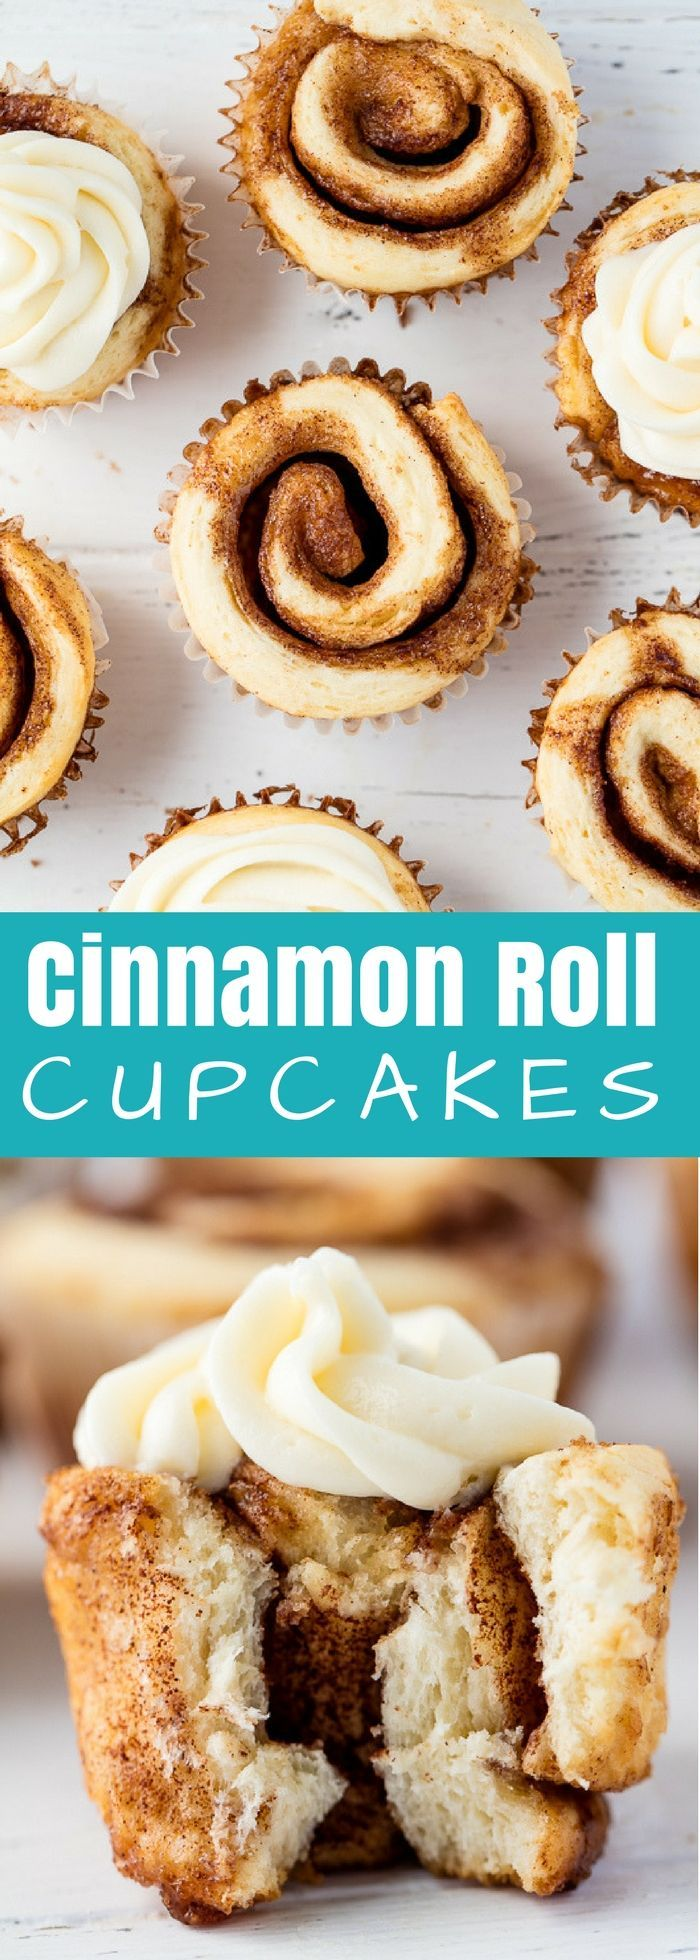 Cinnamon Roll Cupcakes are a fun new way to serve up single sized individual portions. These are just way too much.